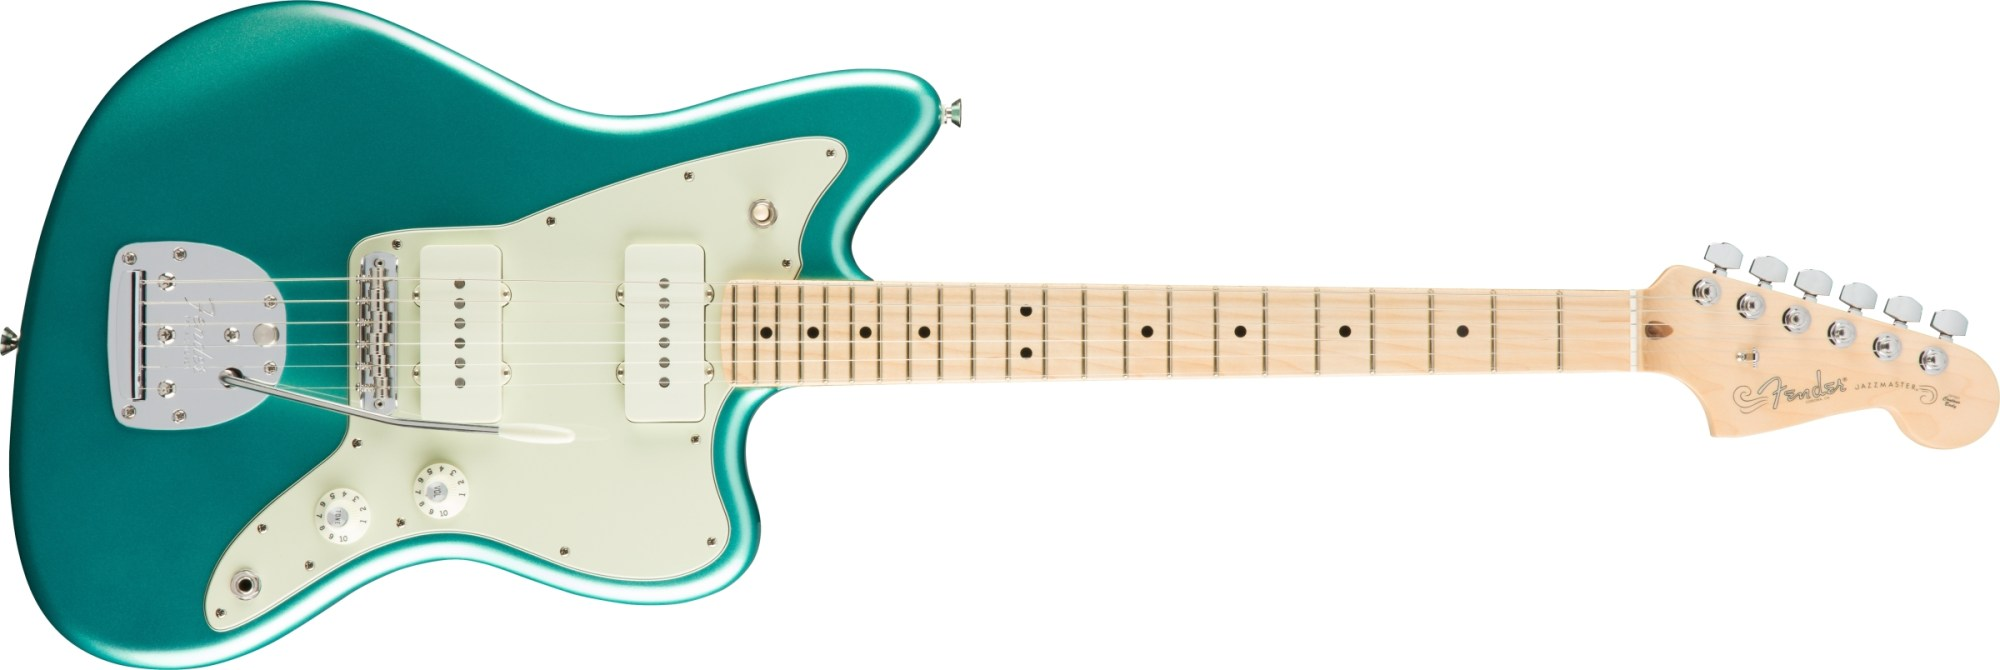 hight resolution of american professional jazzmaster electric guitars rh shop fender com fender blacktop jazzmaster wiring diagram fender jazzmaster string mute